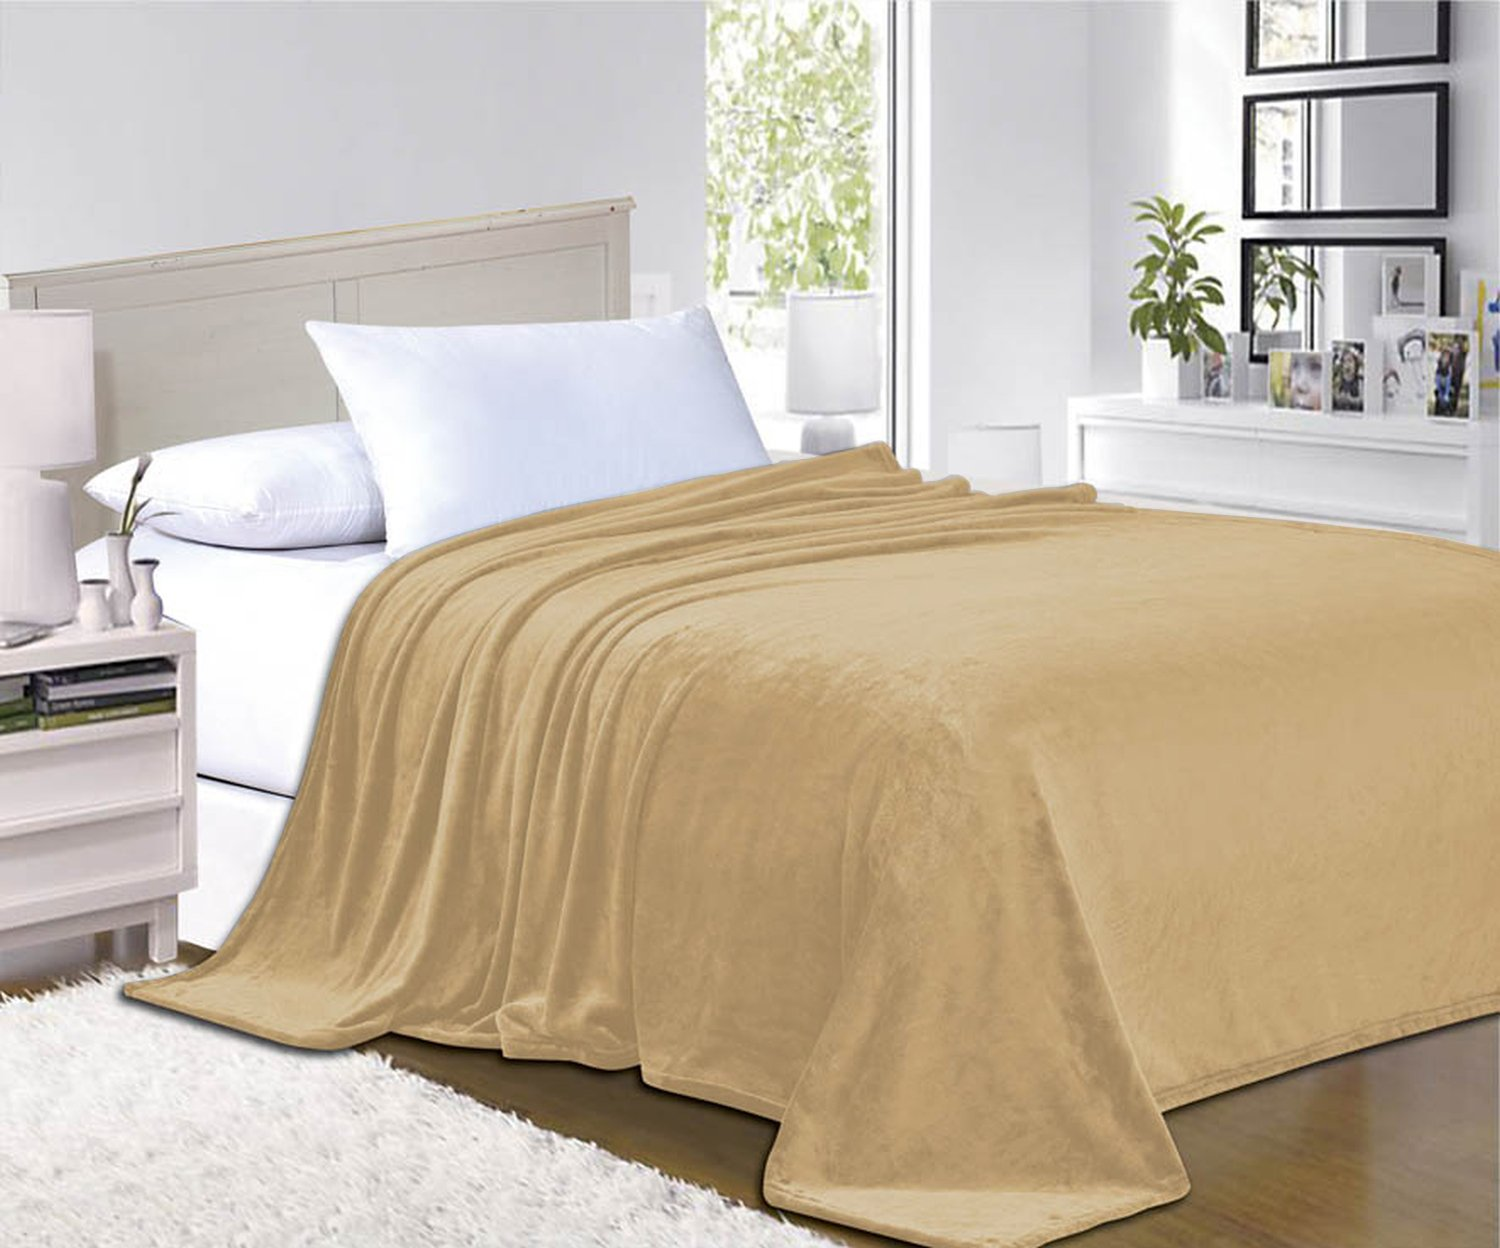 Elegant Comfort® #1 Fleece Blanket on Amazon - Super Silky Soft